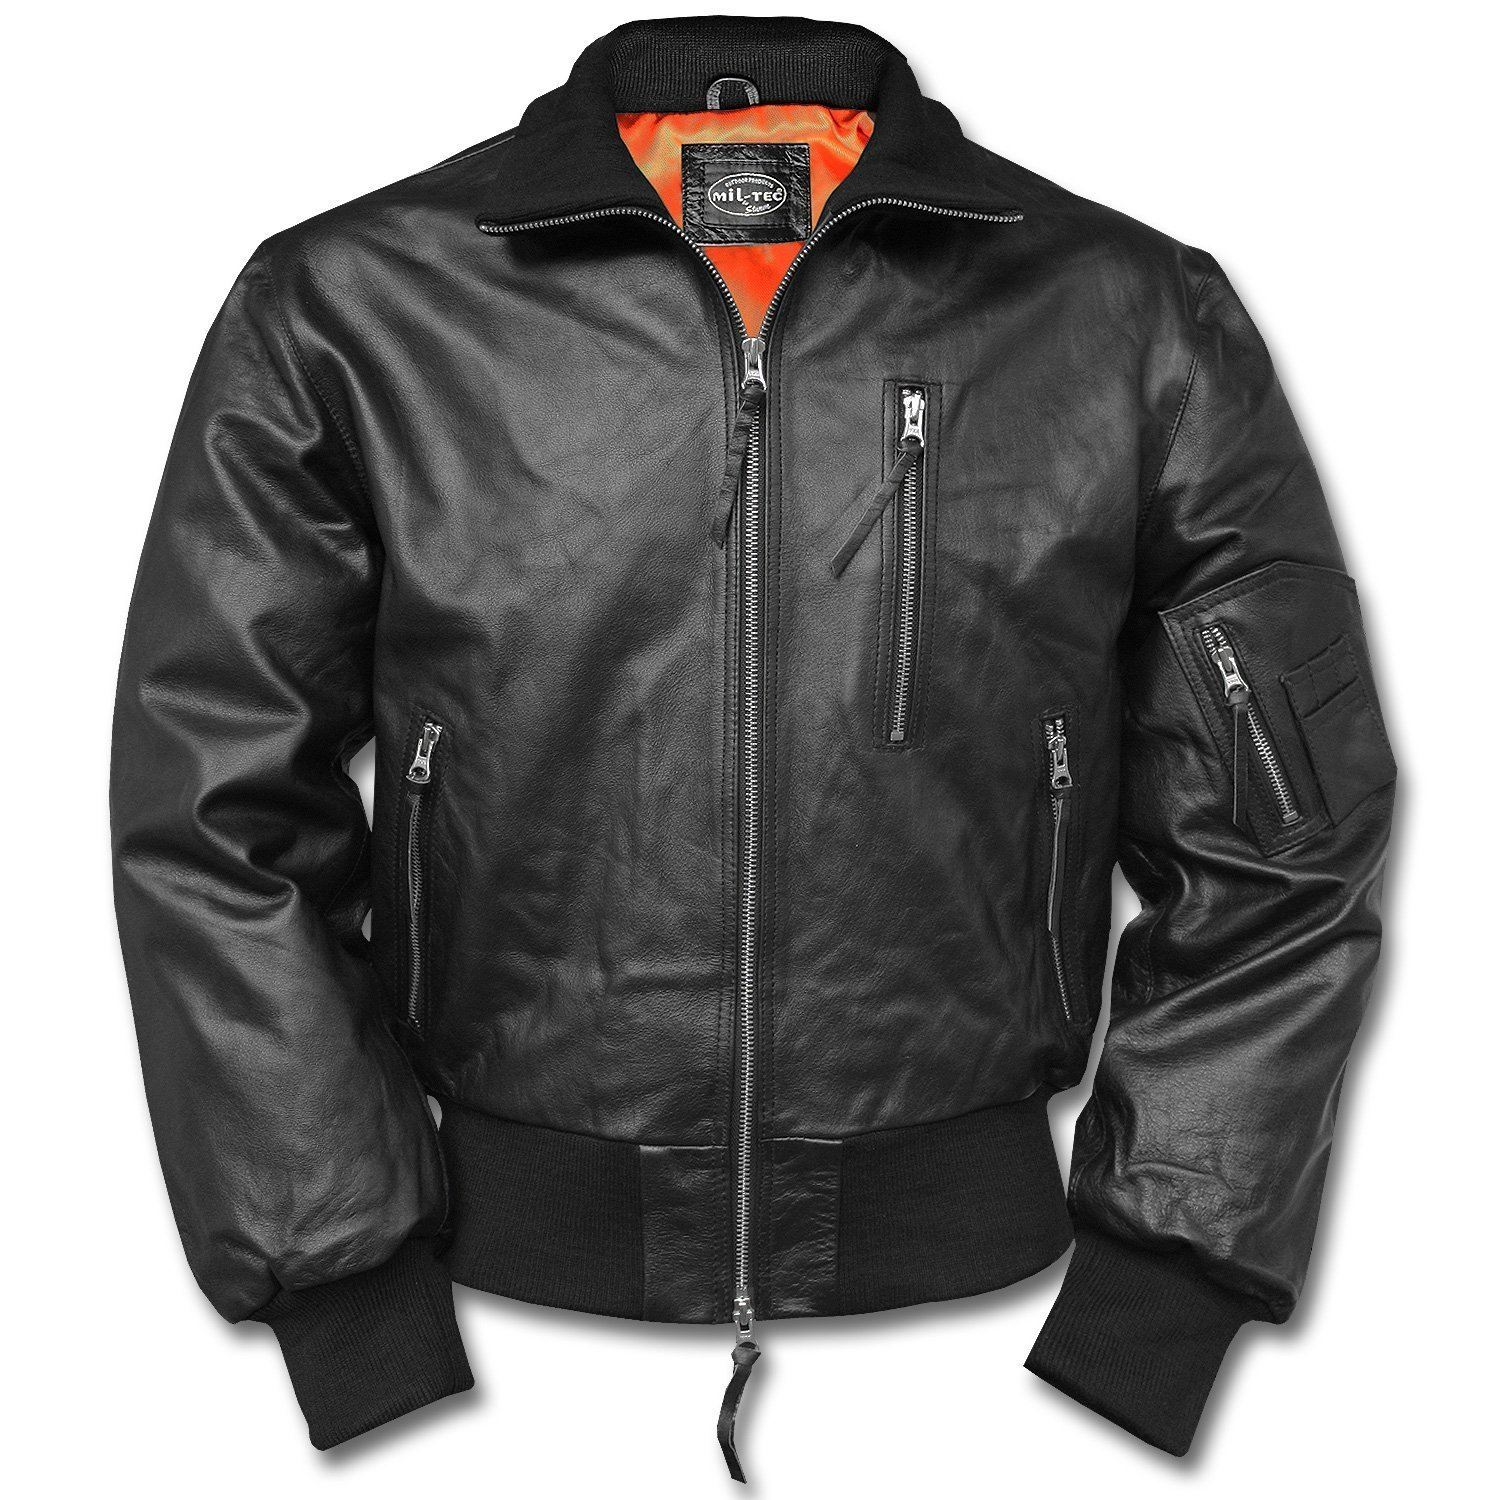 Details about MIL TEC CLASSIC GERMAN LEATHER FLIGHT JACKET MENS ARMY STYLE PILOT BOMBER COAT